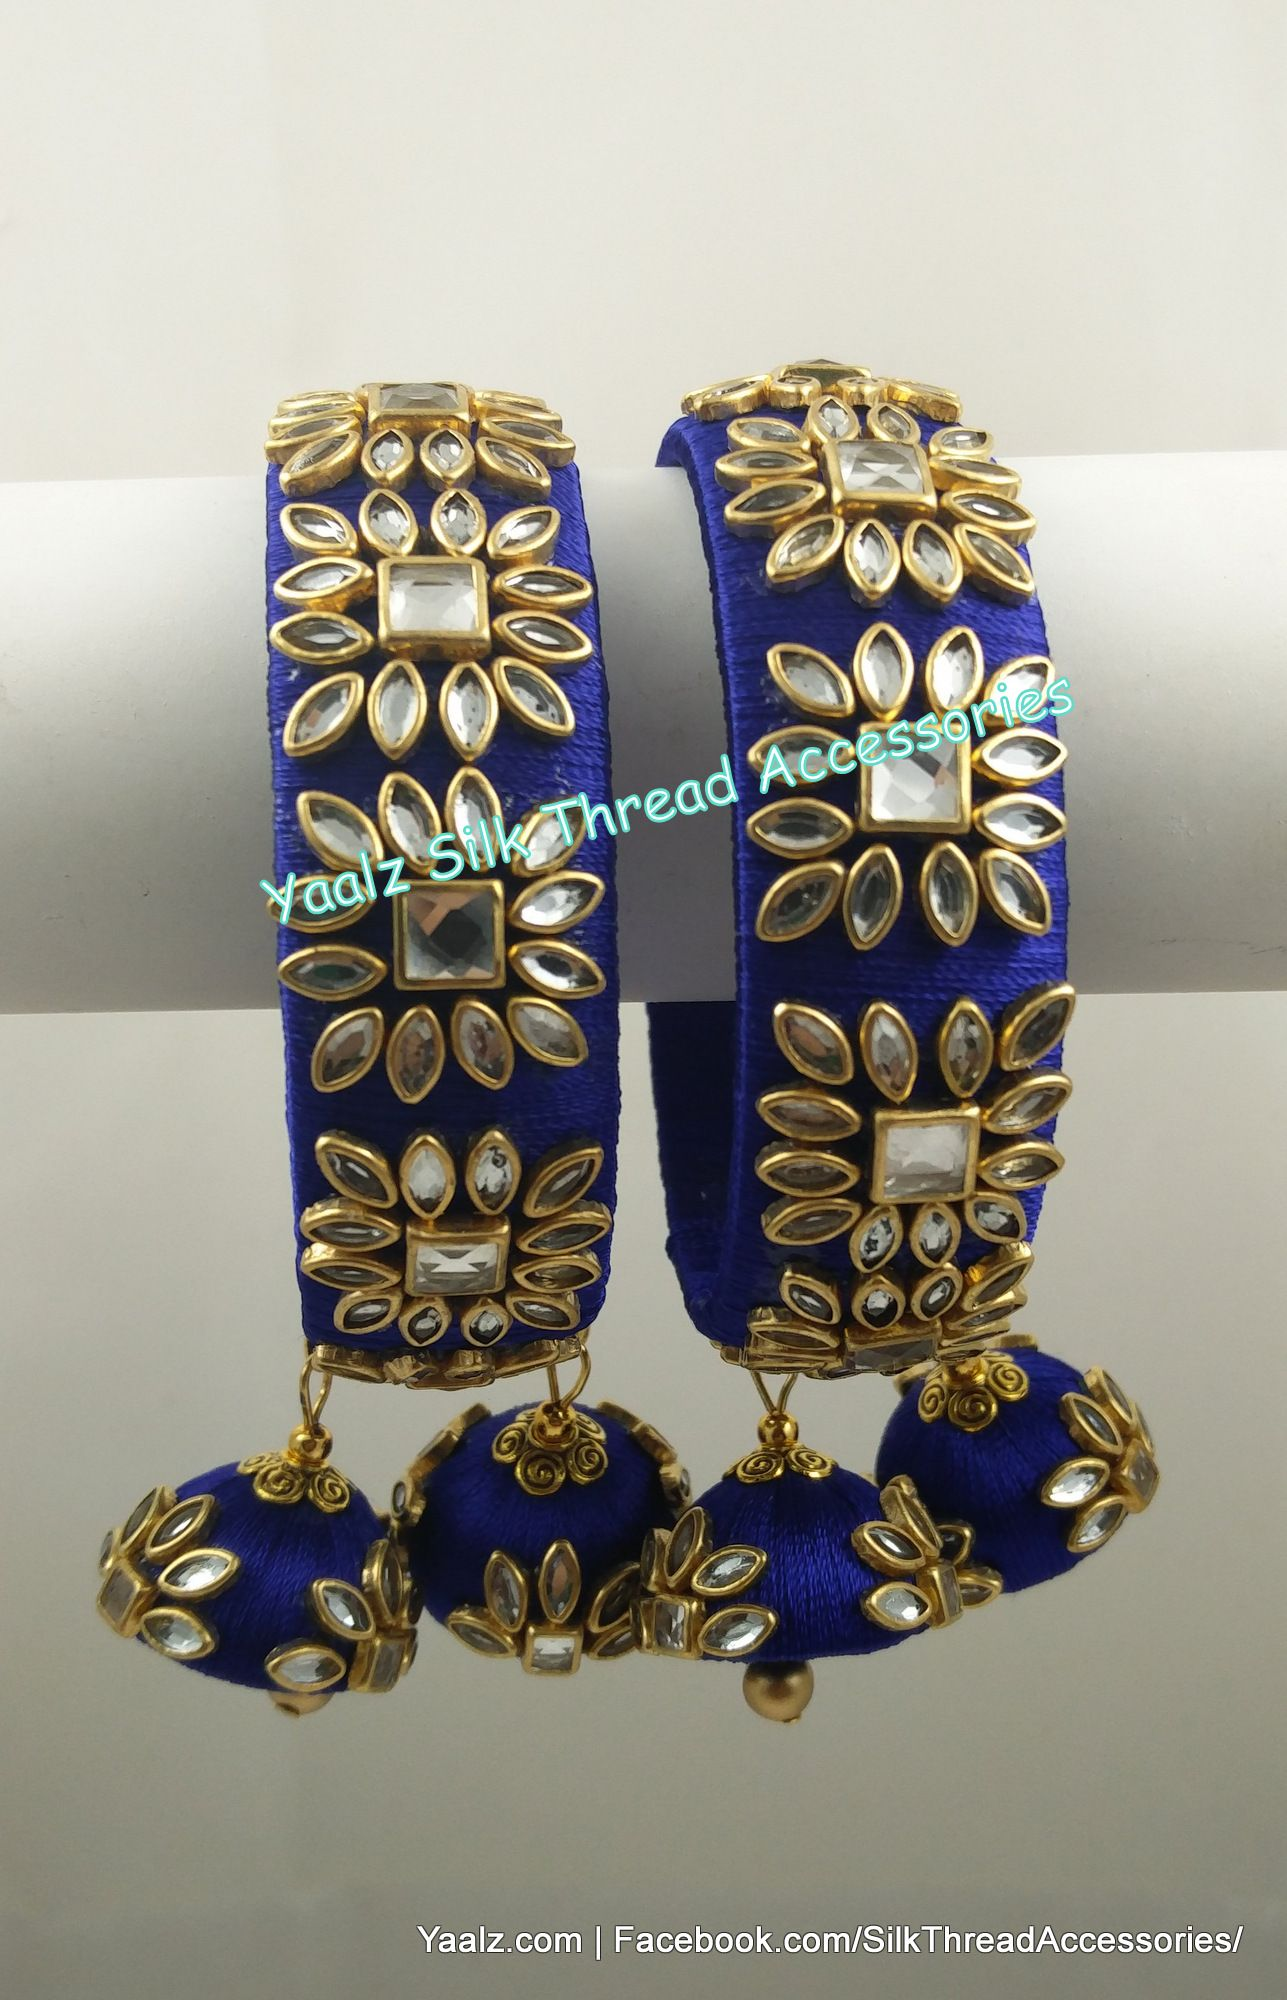 49f2e344b Yaalz Kundan Stone Work Bangle Set In Royal Blue Color !! Price Rs.700 Per  Pair For Orders Ping us In WhatsApp +91 8754032250